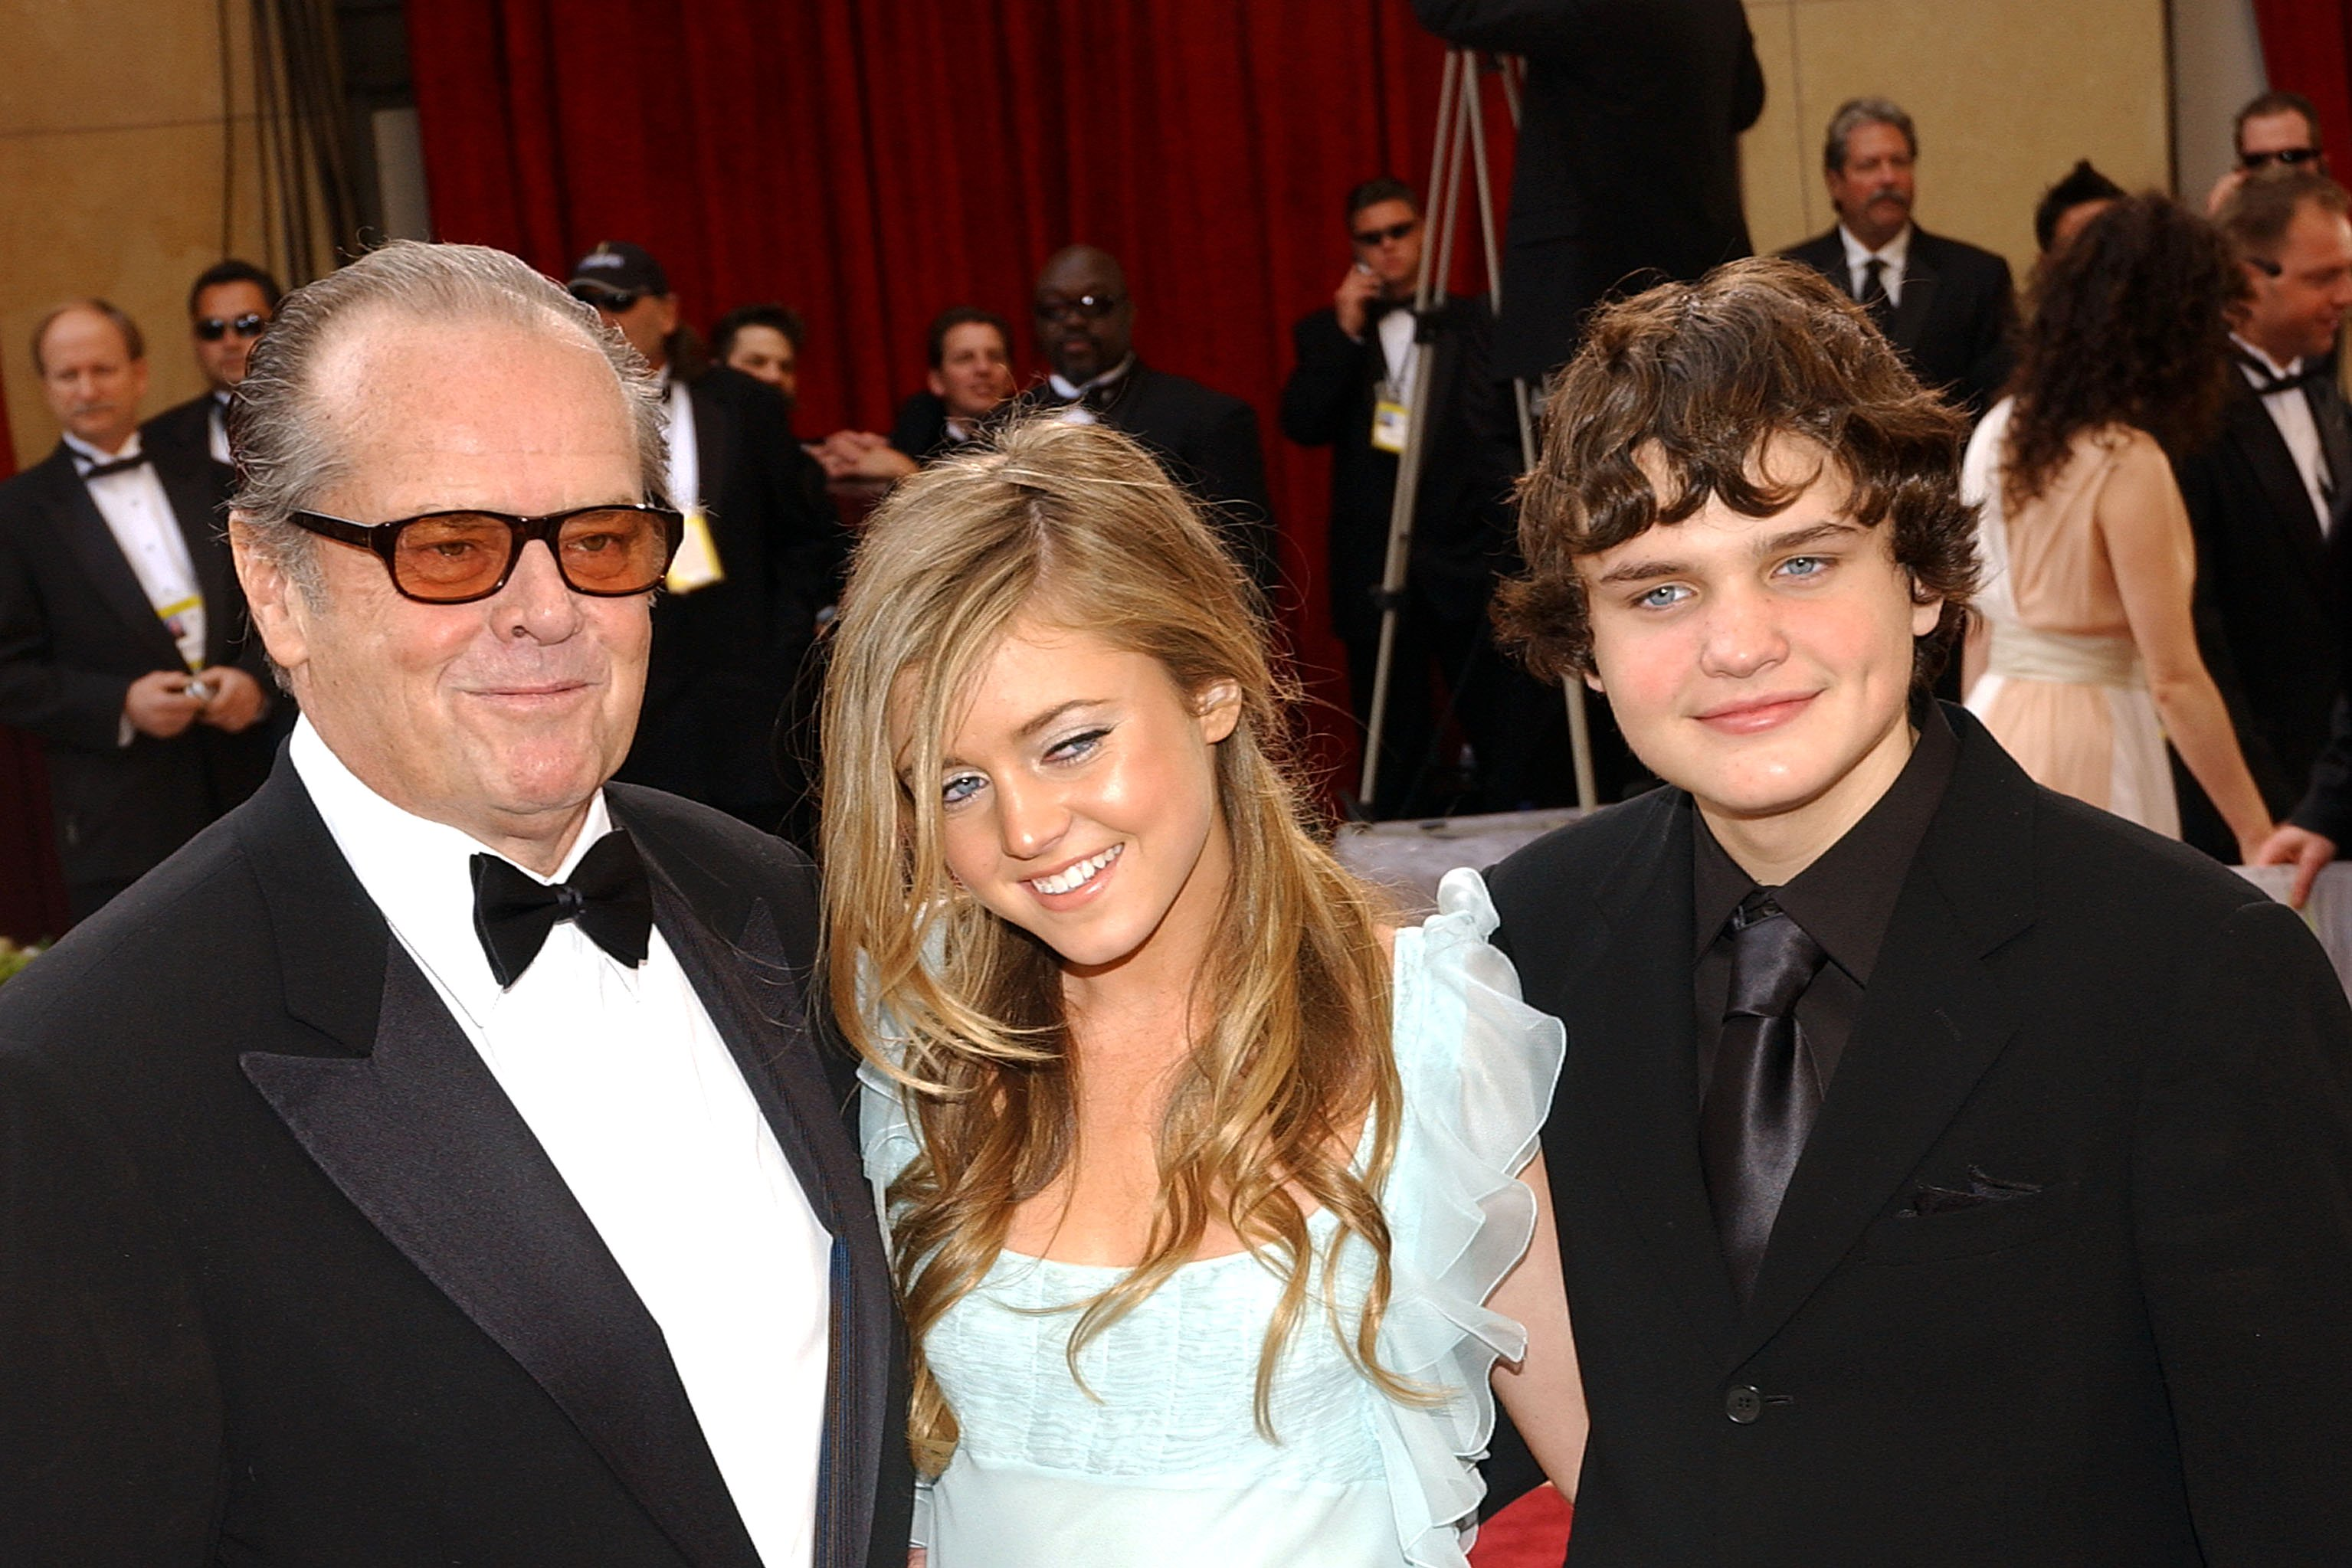 Jack Nicholson S 5 Children Meet The Oscar Winner S Family He's been spotted courtside for. https www closerweekly com posts jack nicholsons 5 children meet the oscar winners family